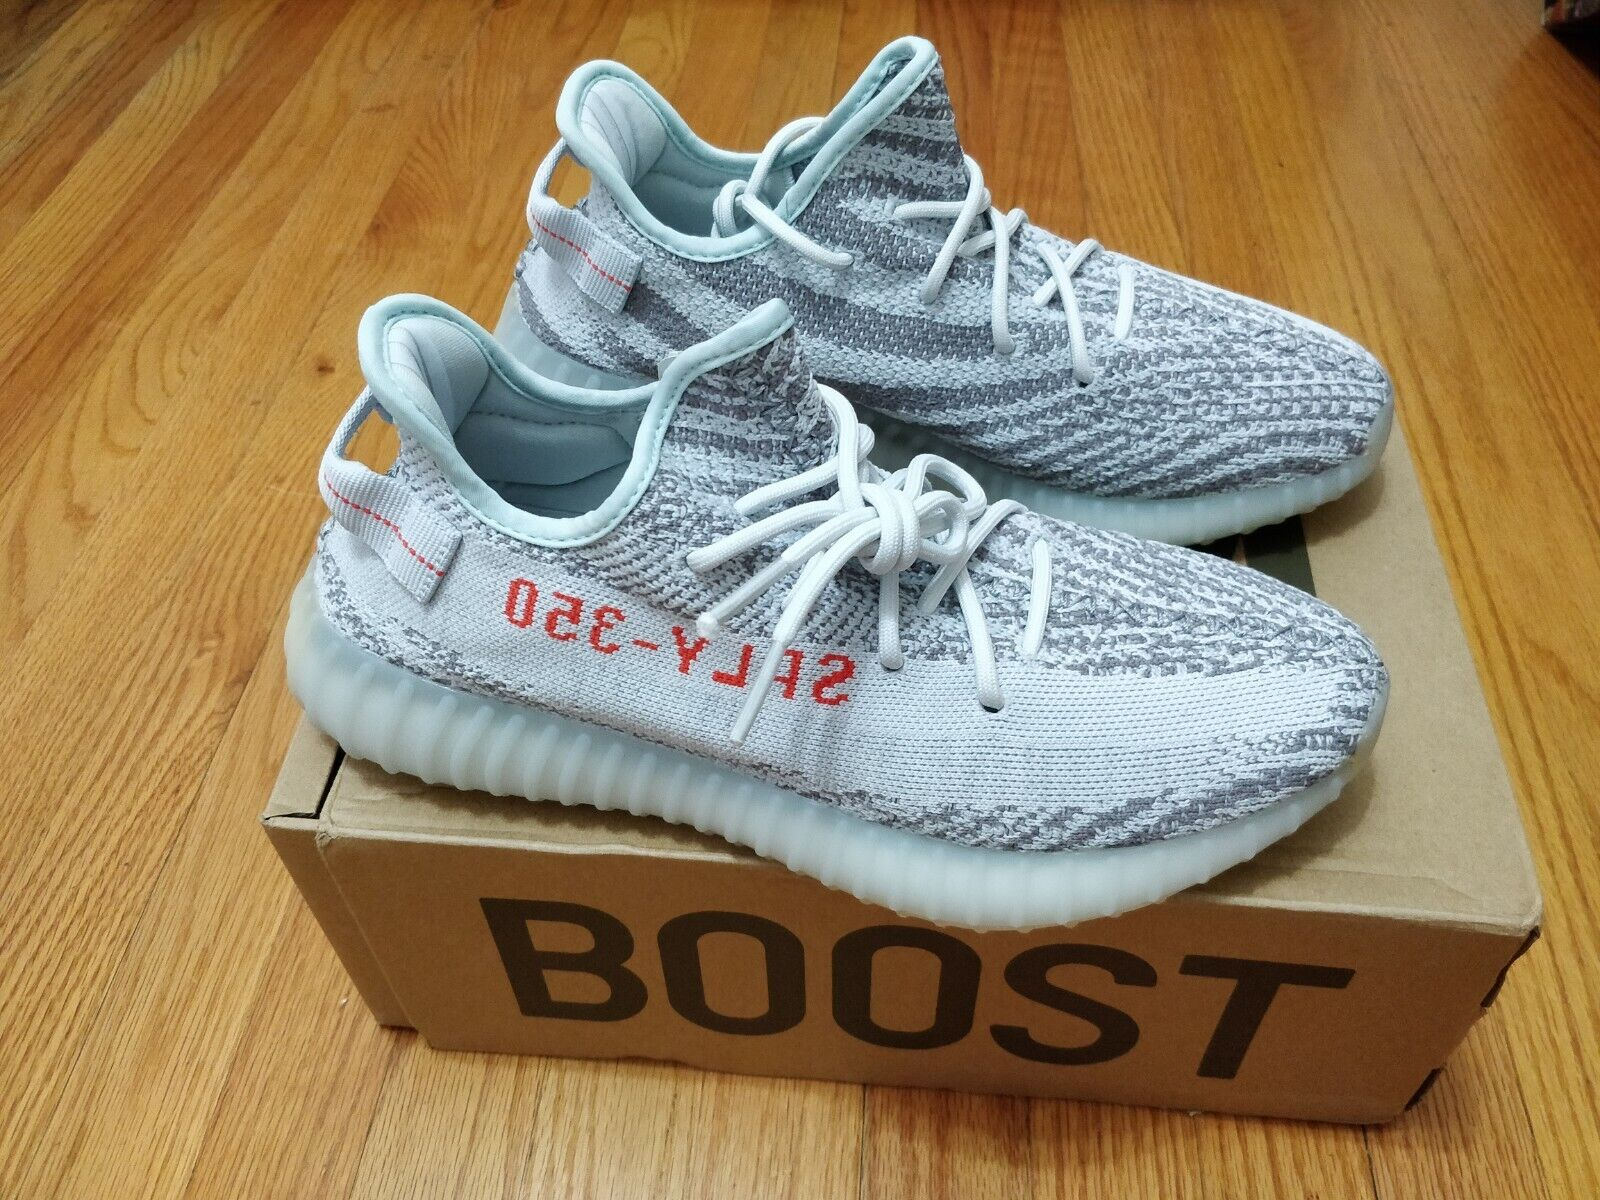 best service 8a0ad 487b0 adidas Yeezy Boost 350 V2 Blue Tint 10